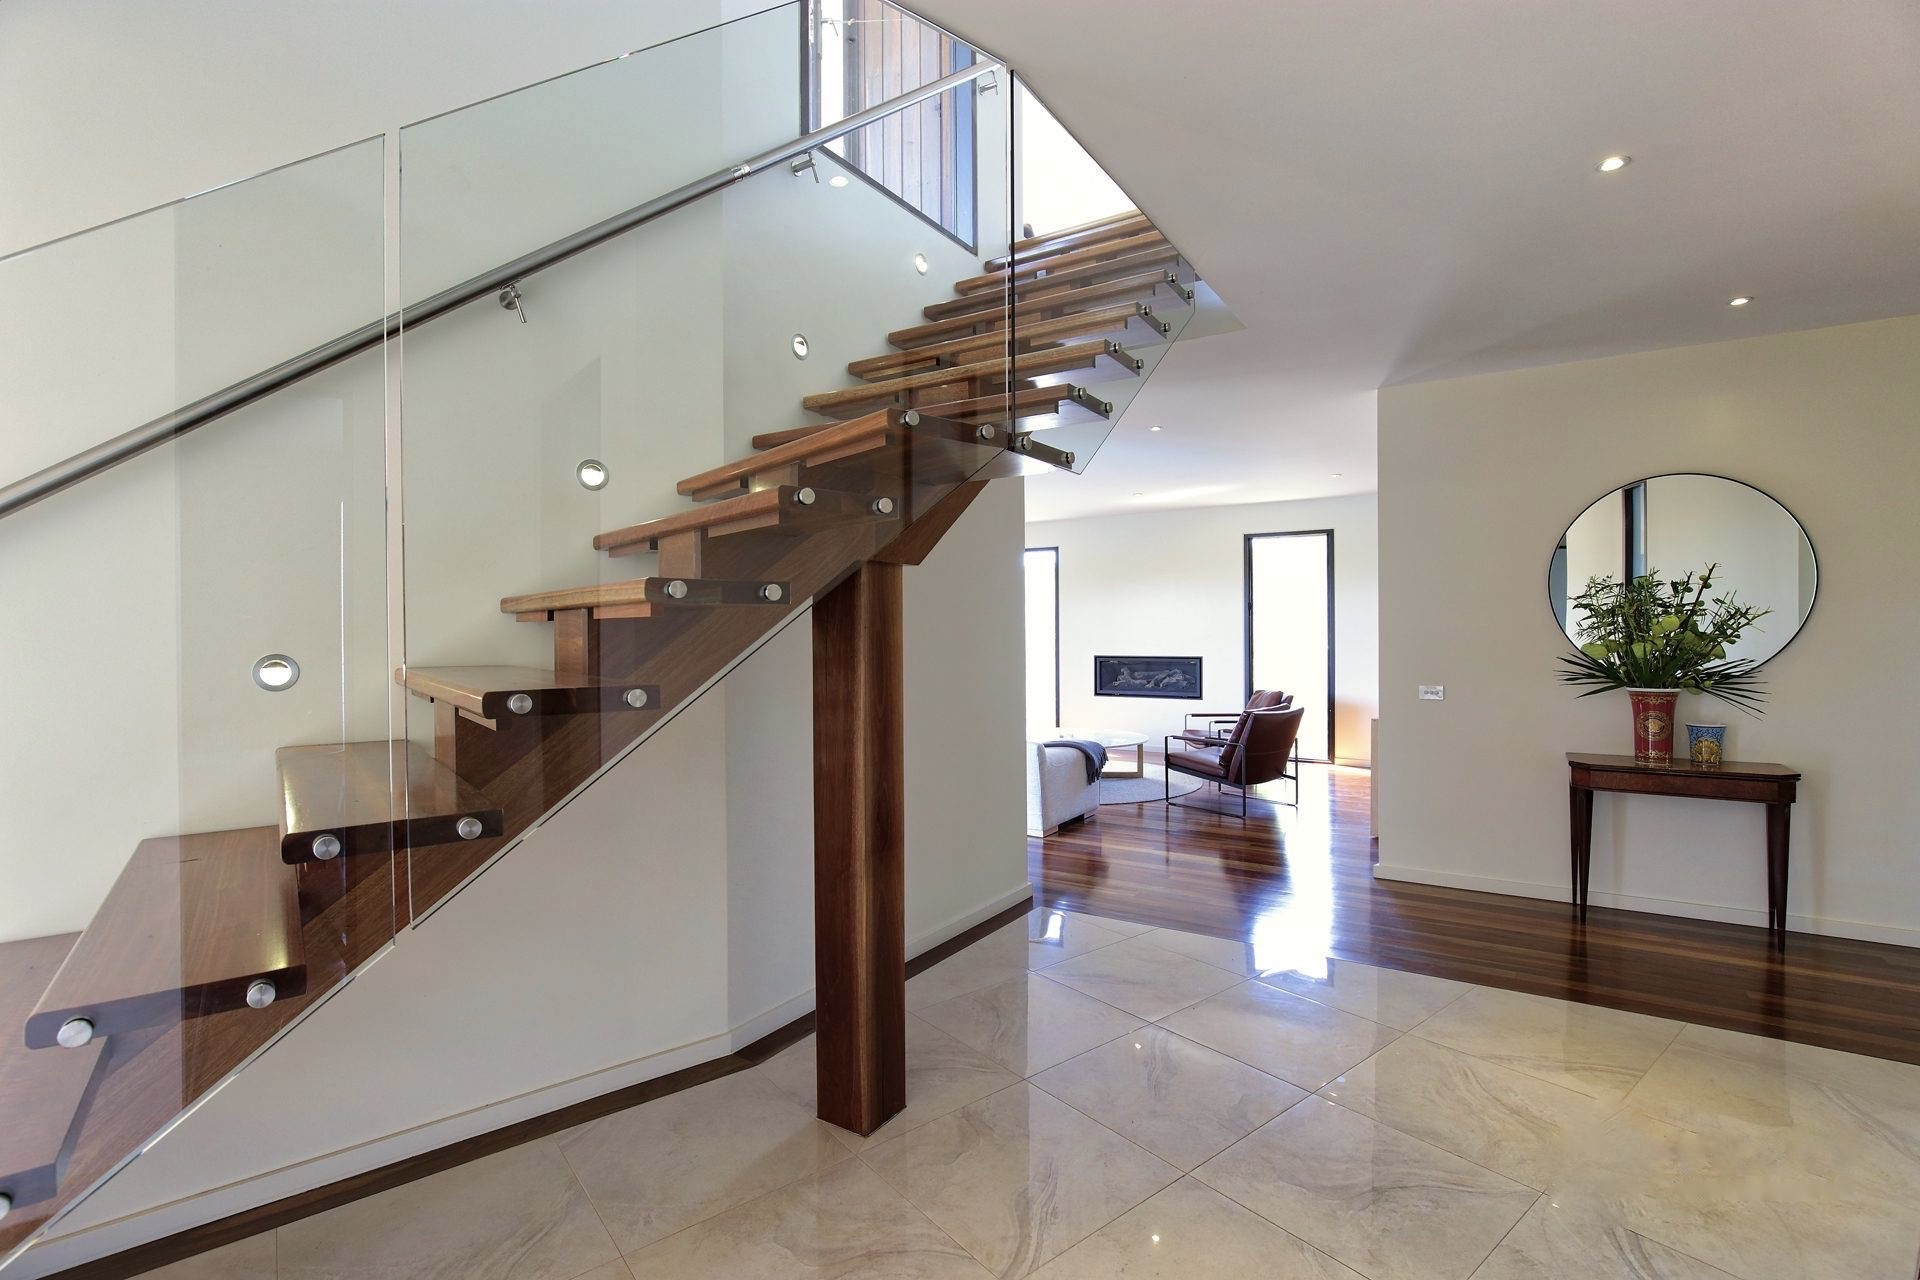 Seaview Staircase